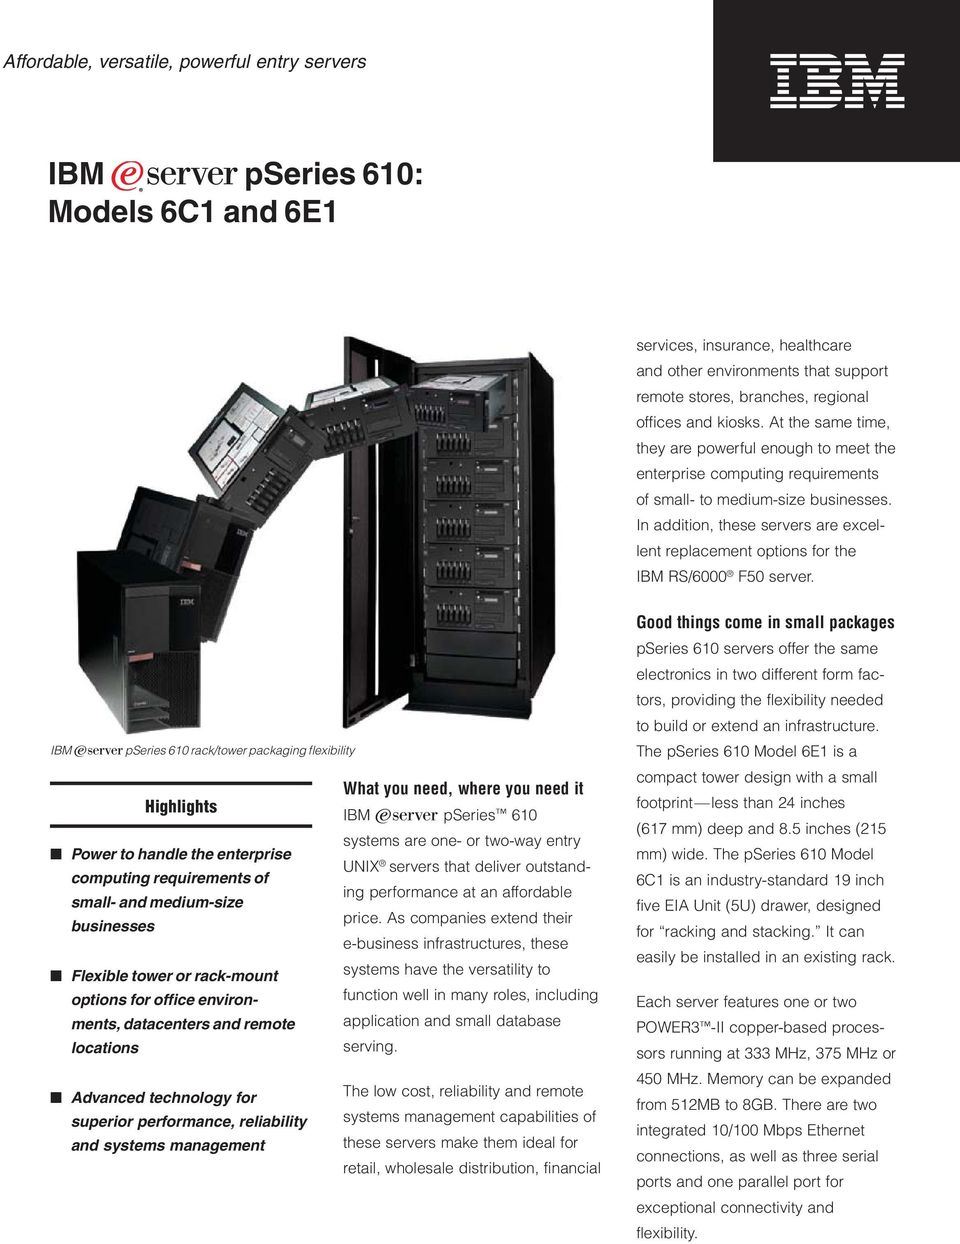 In addition, these servers are excellent replacement options for the IBM RS/6000 F50 server.